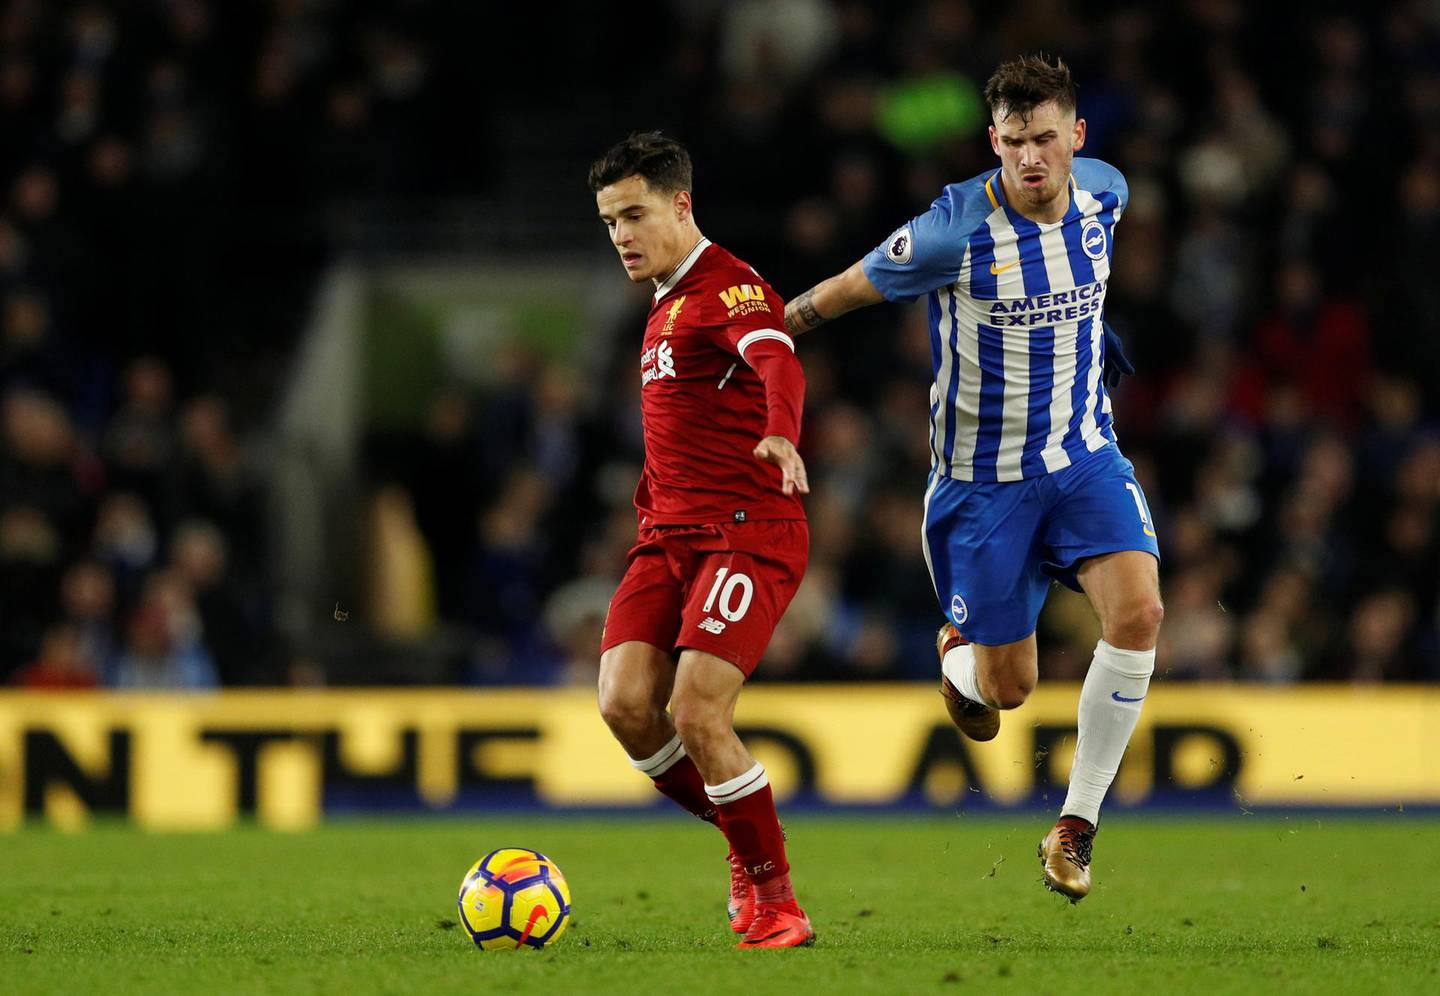 """Soccer Football - Premier League - Brighton & Hove Albion vs Liverpool - The American Express Community Stadium, Brighton, Britain - December 2, 2017   Brighton's Pascal Gross in action with Liverpool's Philippe Coutinho                Action Images via Reuters/John Sibley    EDITORIAL USE ONLY. No use with unauthorized audio, video, data, fixture lists, club/league logos or """"live"""" services. Online in-match use limited to 75 images, no video emulation. No use in betting, games or single club/league/player publications. Please contact your account representative for further details."""